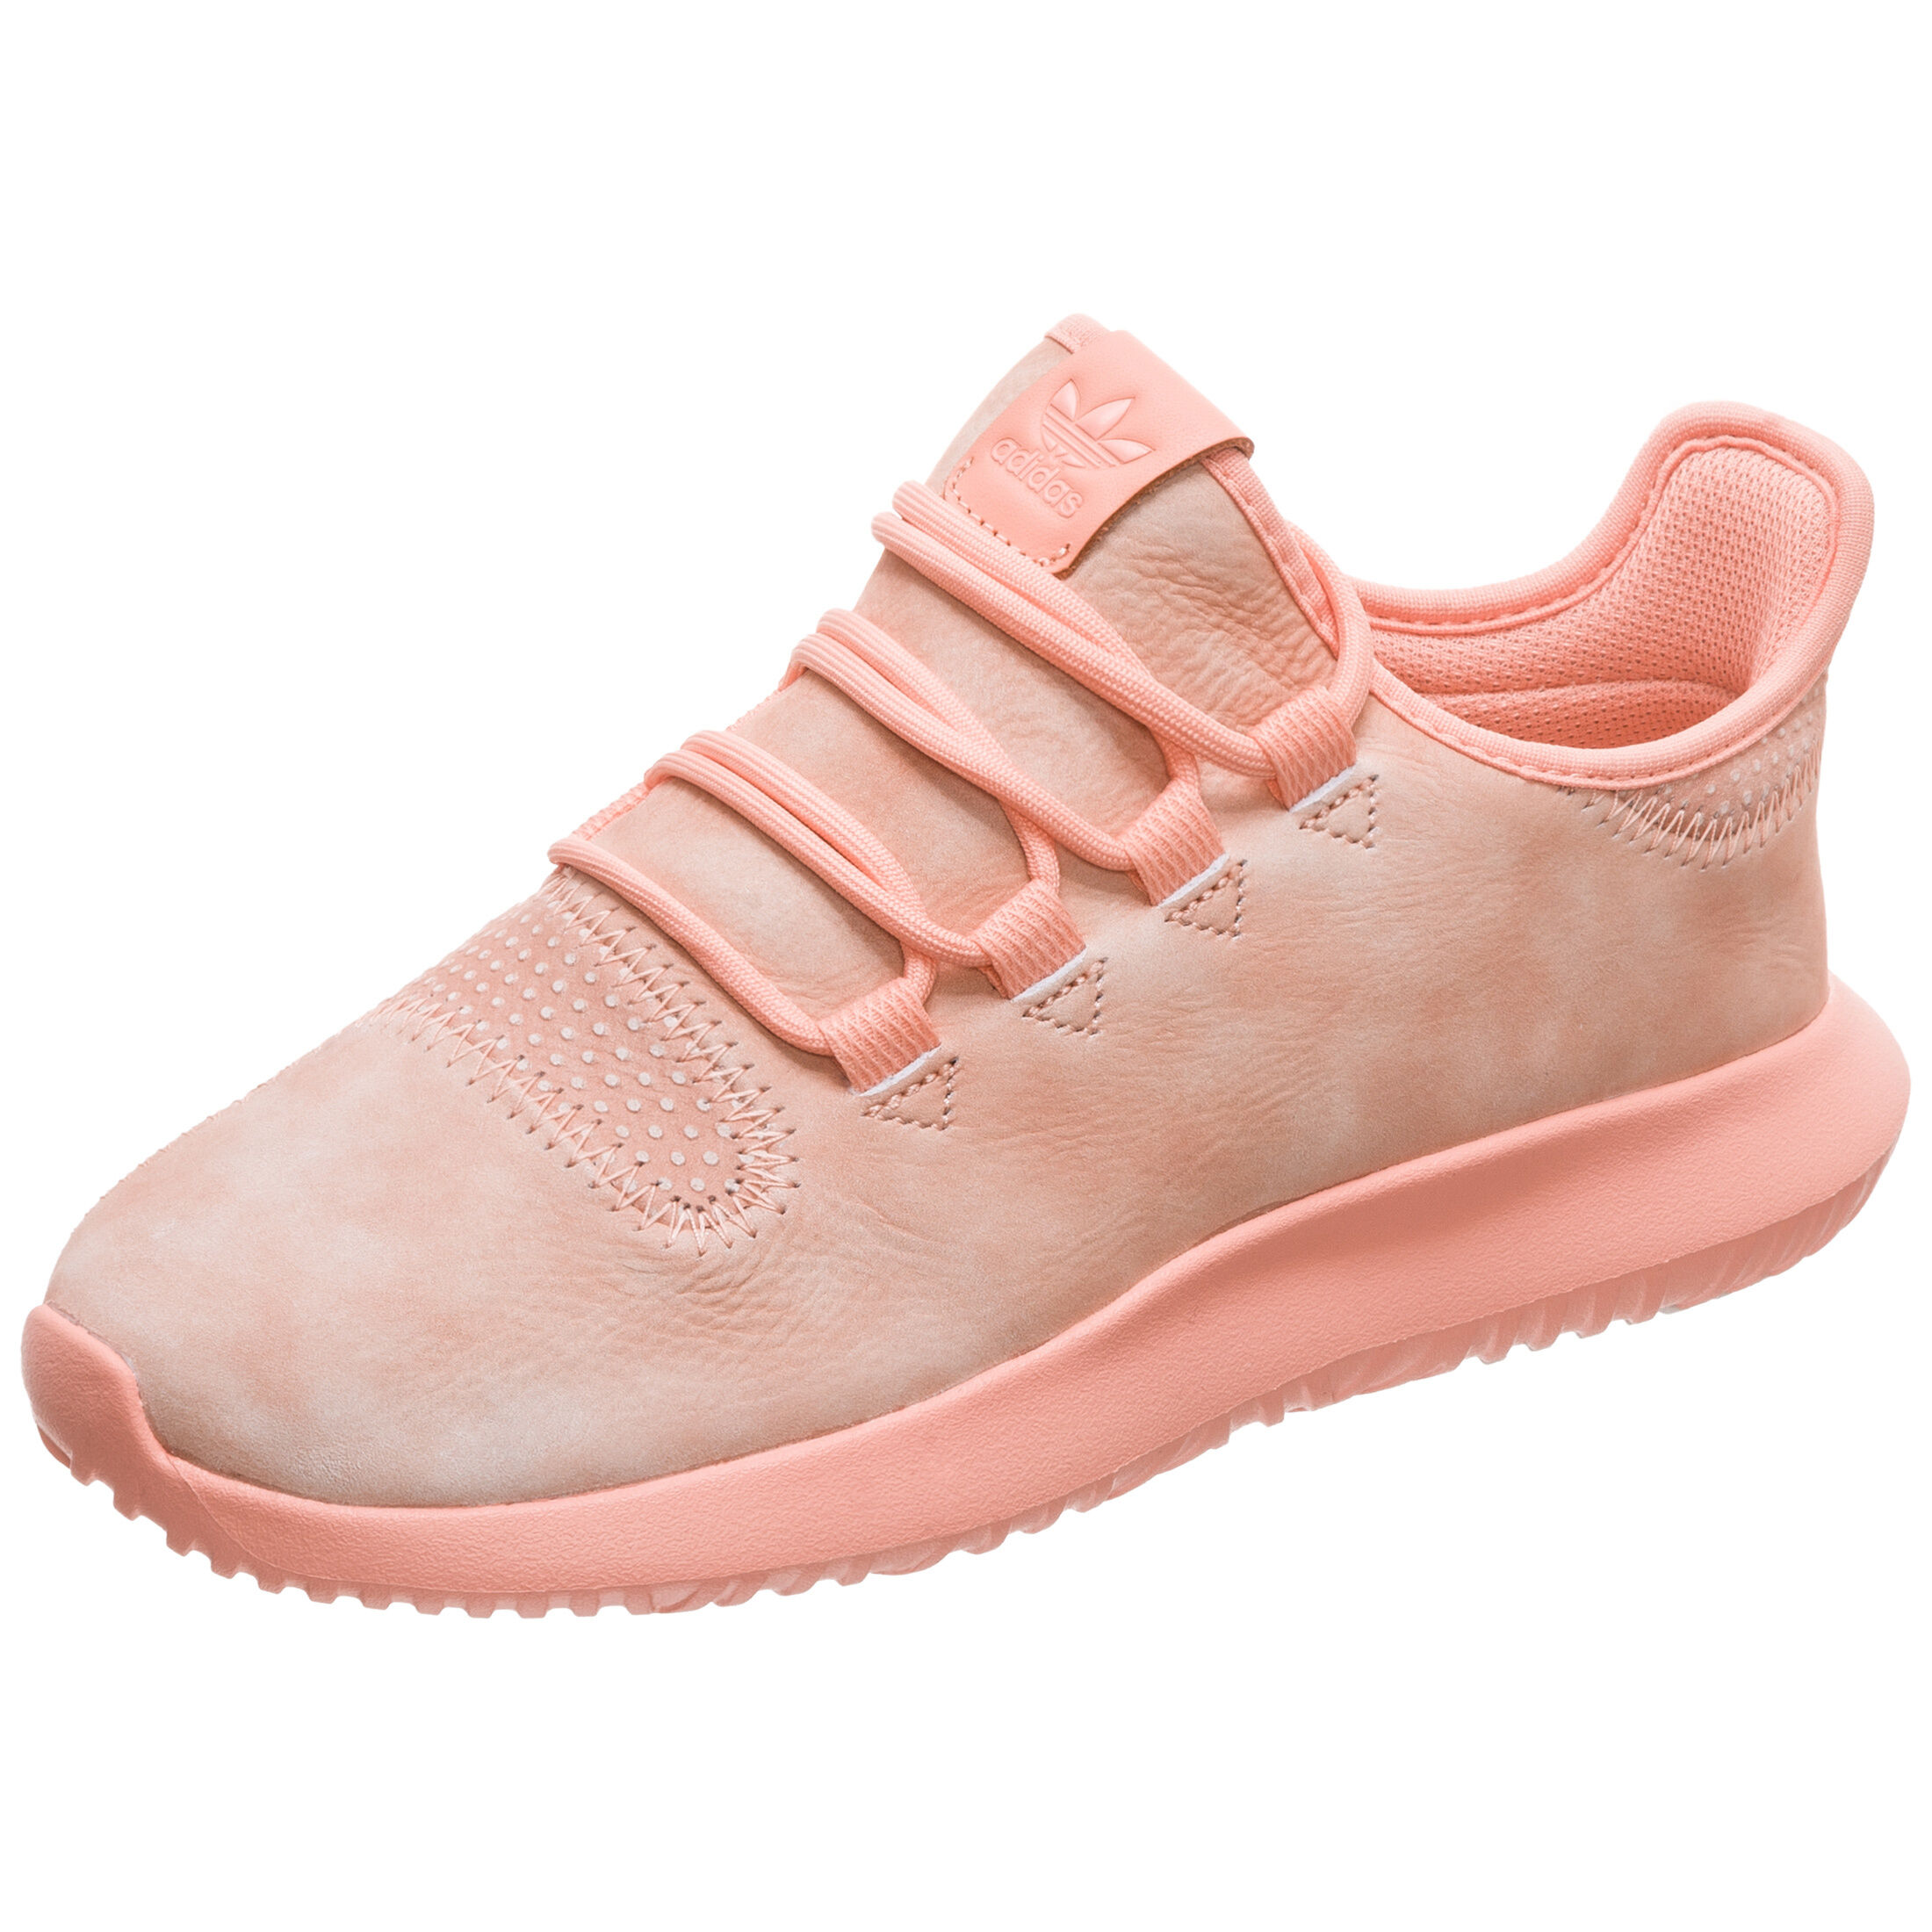 Nice Casual Schuhe Damen adidas Originals Tubular Runner